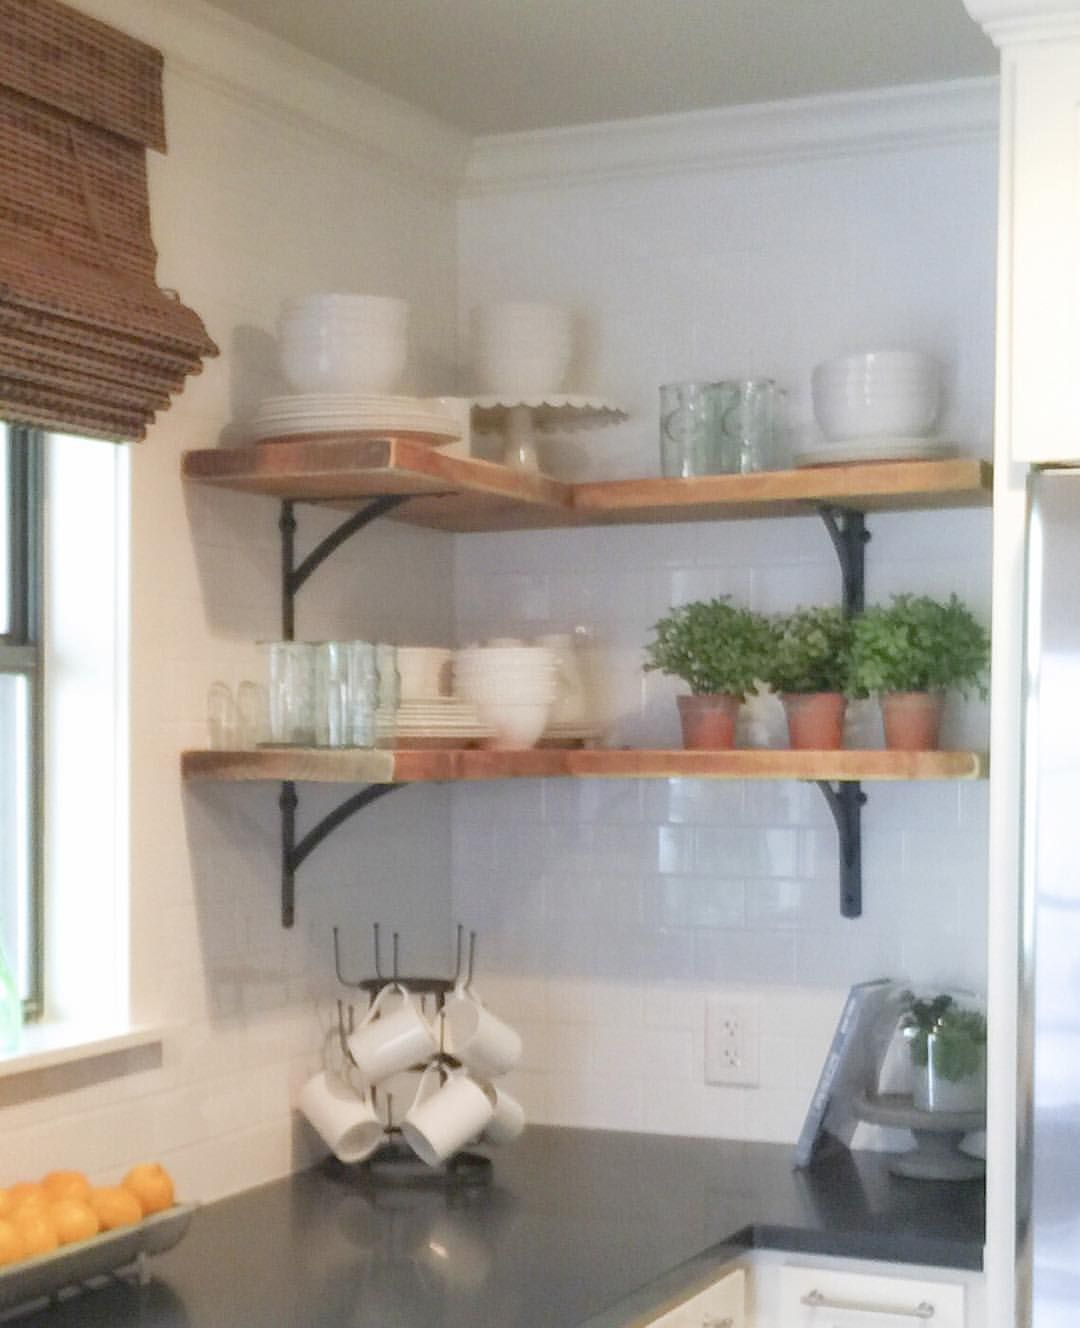 Shanty Sisters On Instagram Simple Corner Shelves We Bought  Inexpensive Metal Brackets And One X Board From Home Depot